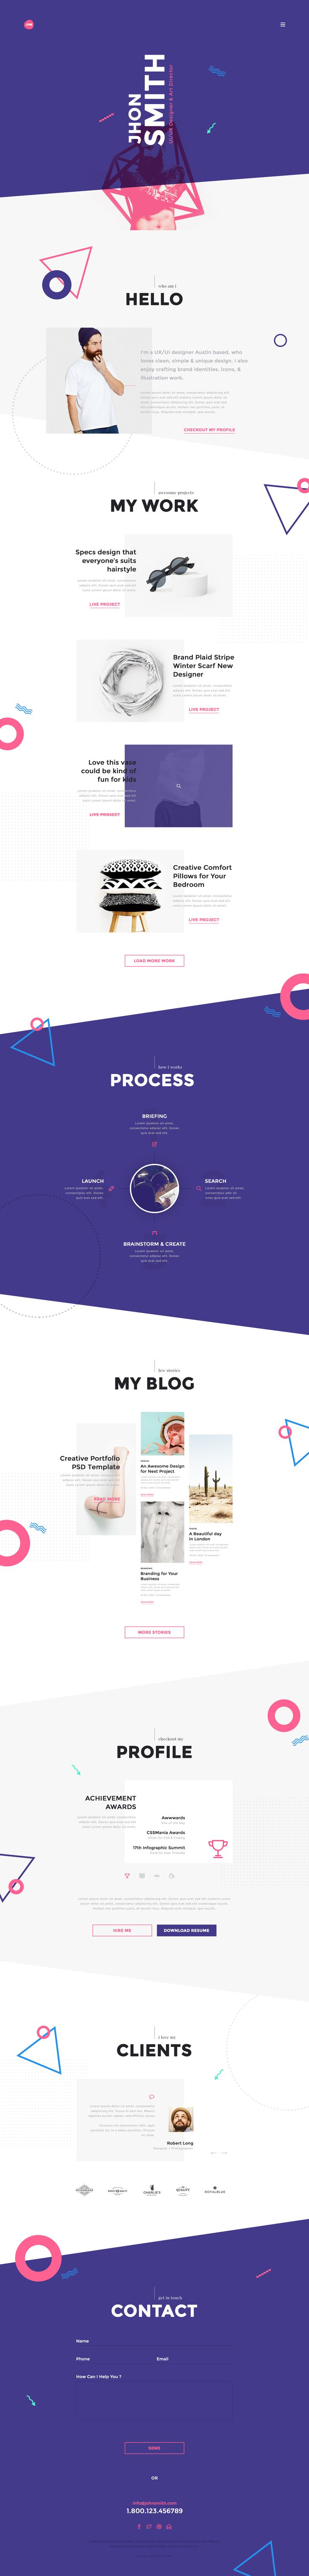 Buy Me - Creative Portfolio & Resume / CV PSD Template by webduck on ThemeForest. Me is a one page & Multi Pages psd portfolio & CV / Resume templates for Designer, Developer, Freelancer Arti...